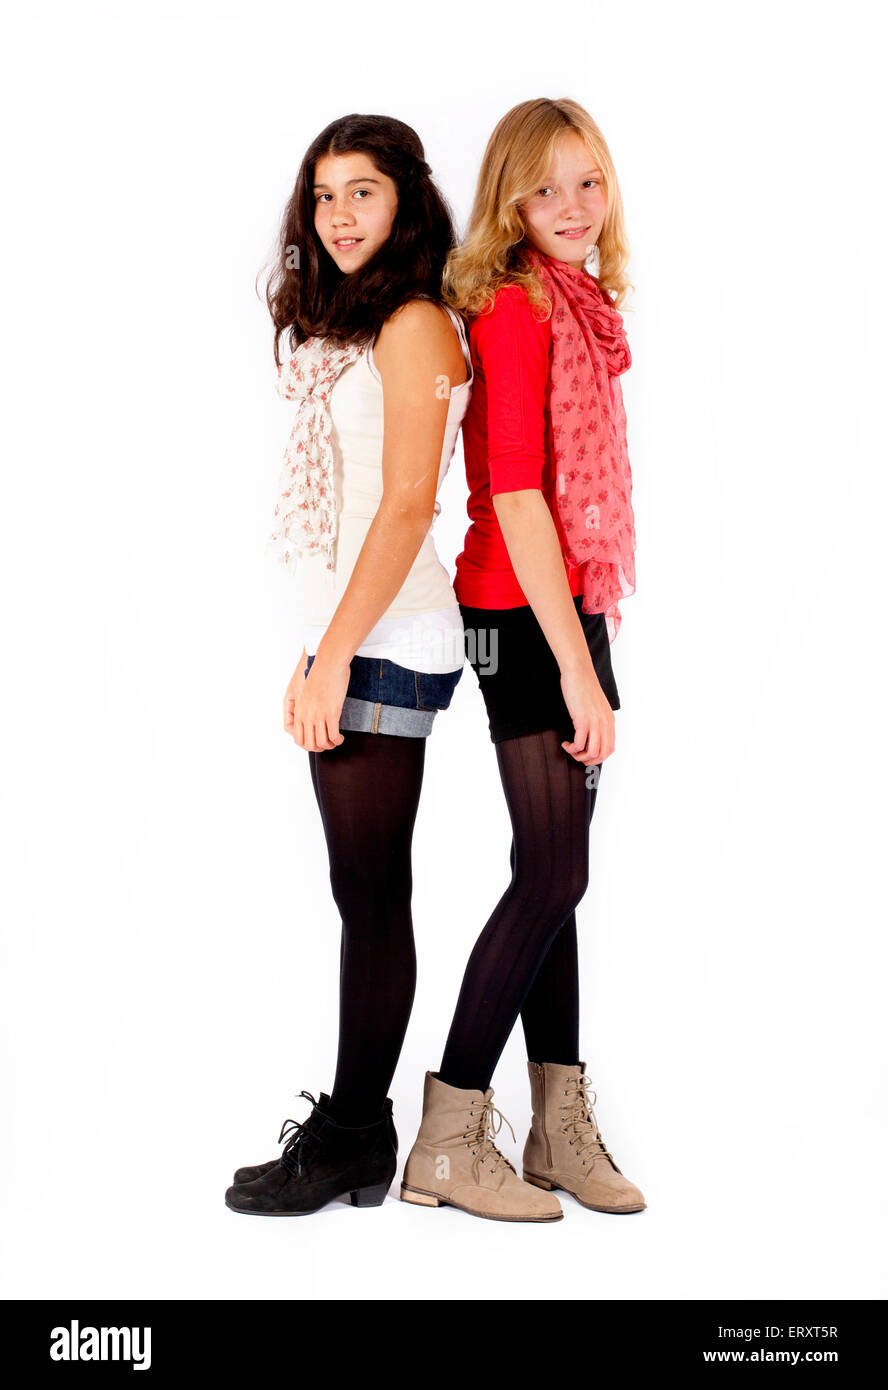 two girls standing next to each other stock photo 83568291 alamy